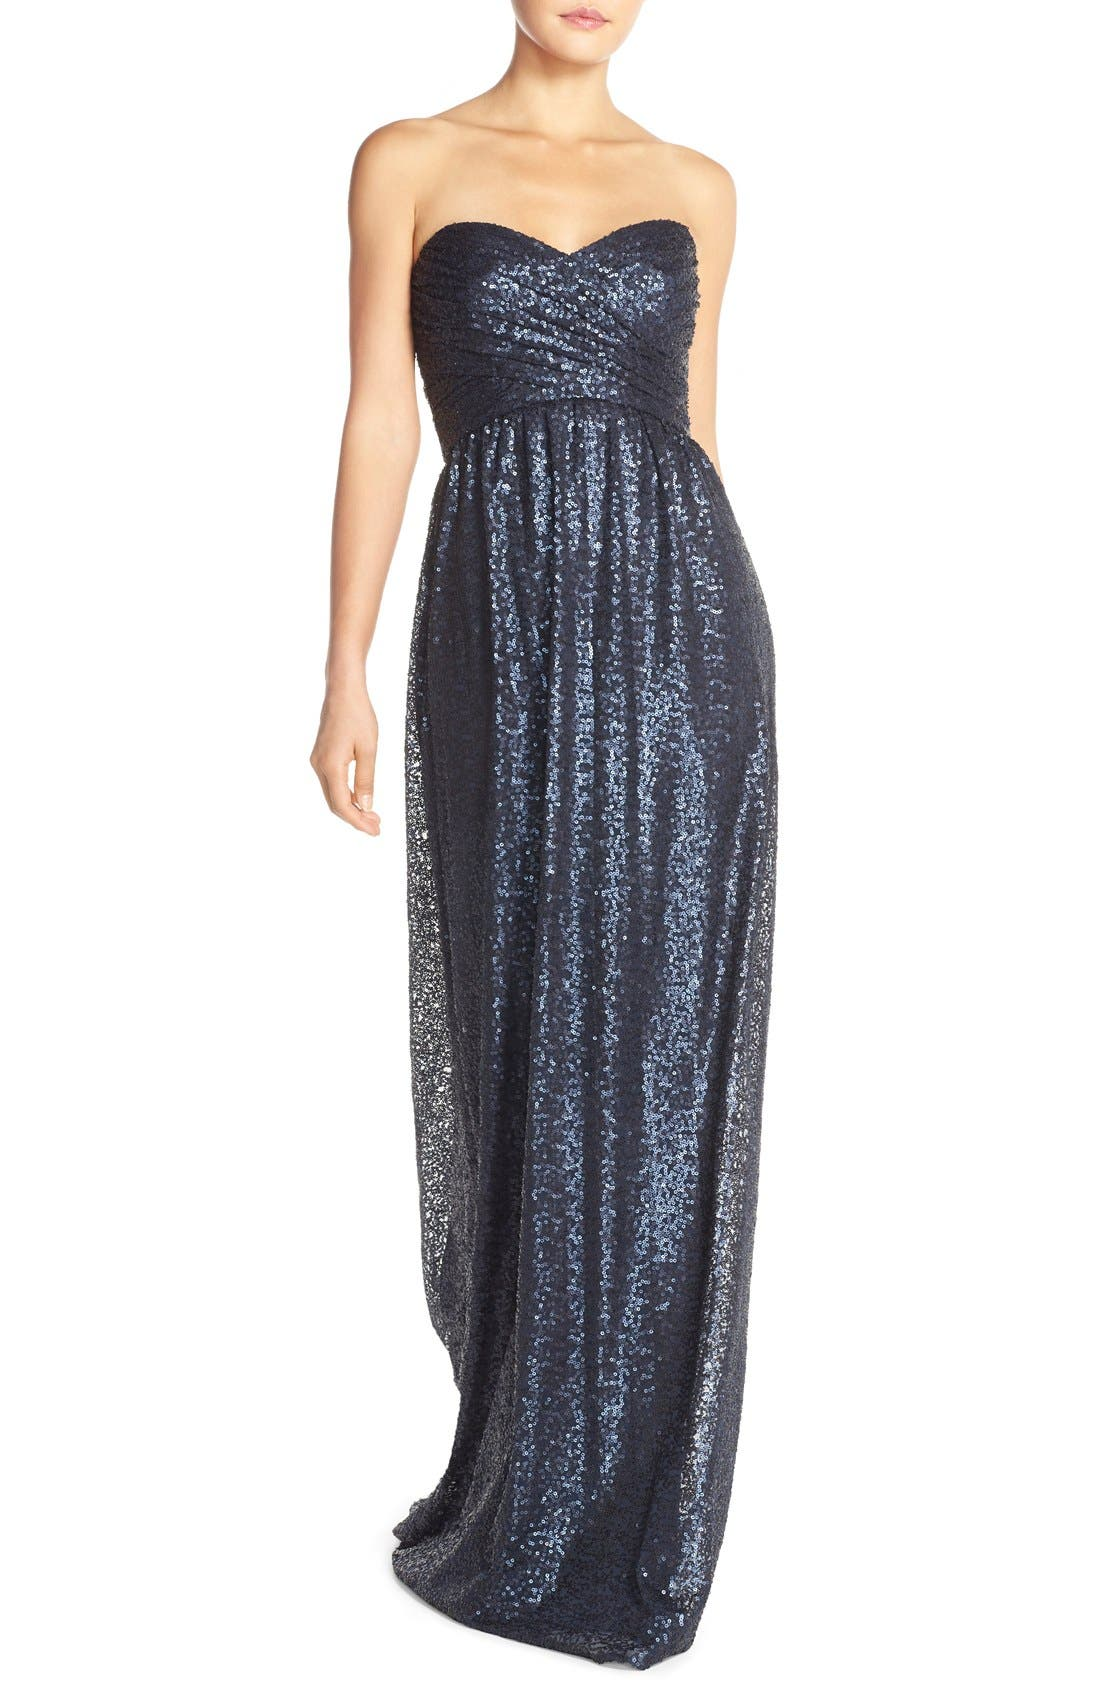 Alternate Image 1 Selected - Amsale 'London' Sequin Tulle Strapless Column Gown